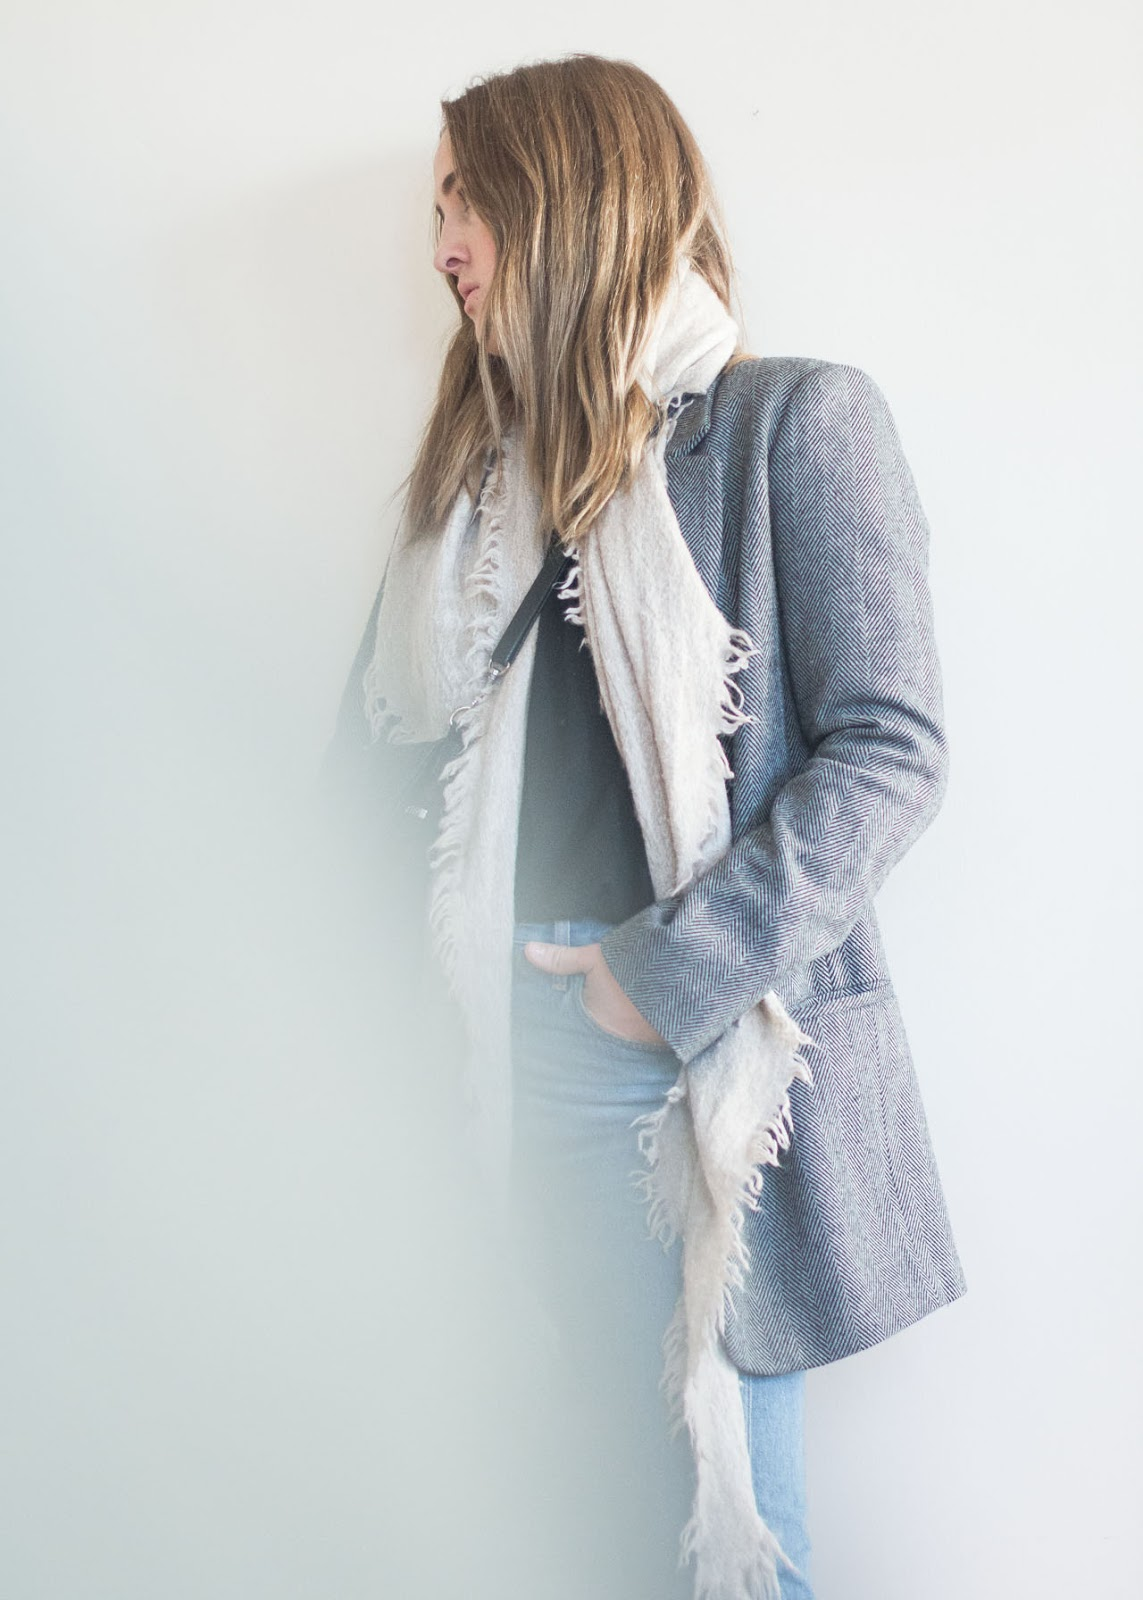 Winter favorites - Outfit - Vancouver Fashion Blog - Zara blazer - Agolde jeans